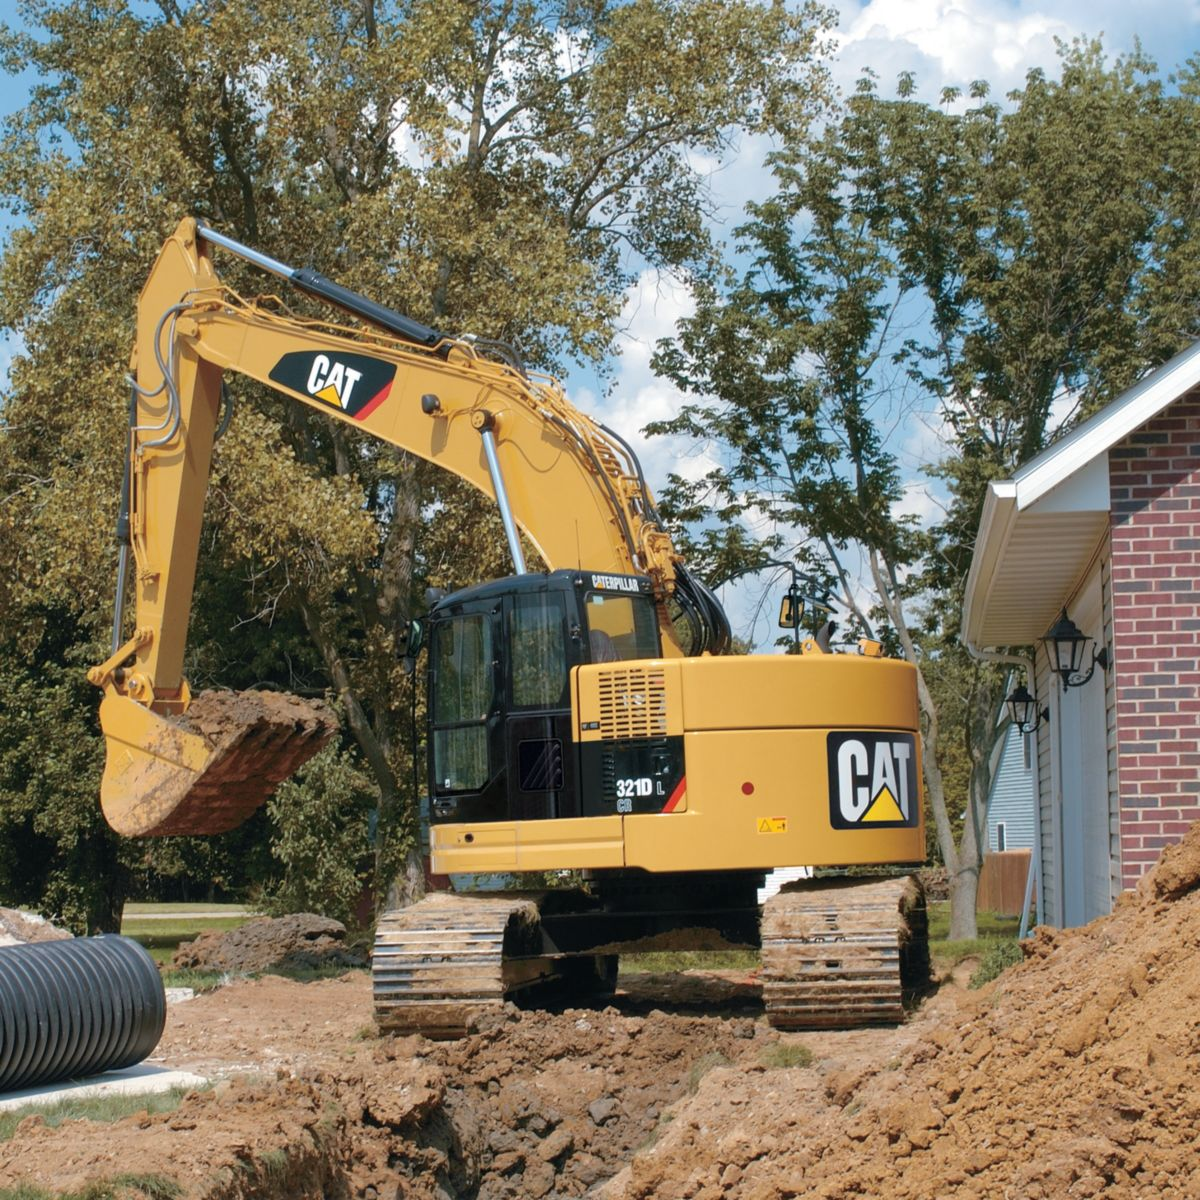 New 321d Lcr Hydraulic Excavator For Sale Thompson